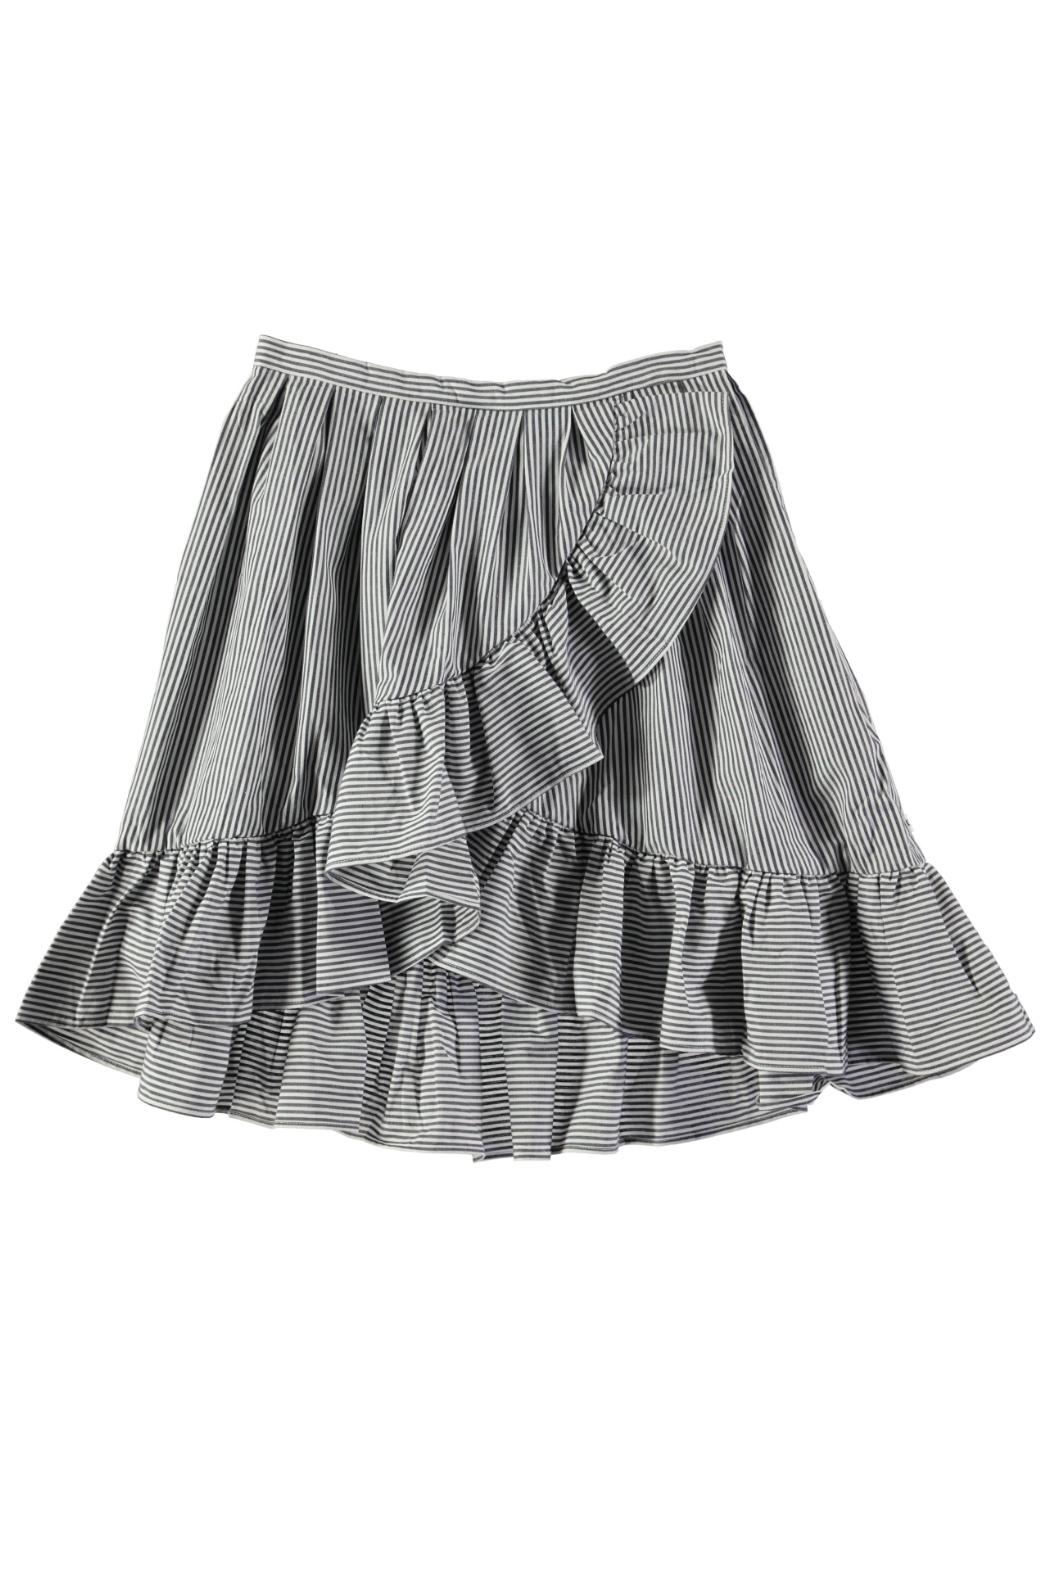 Molo Blondie Skirt - Front Cropped Image